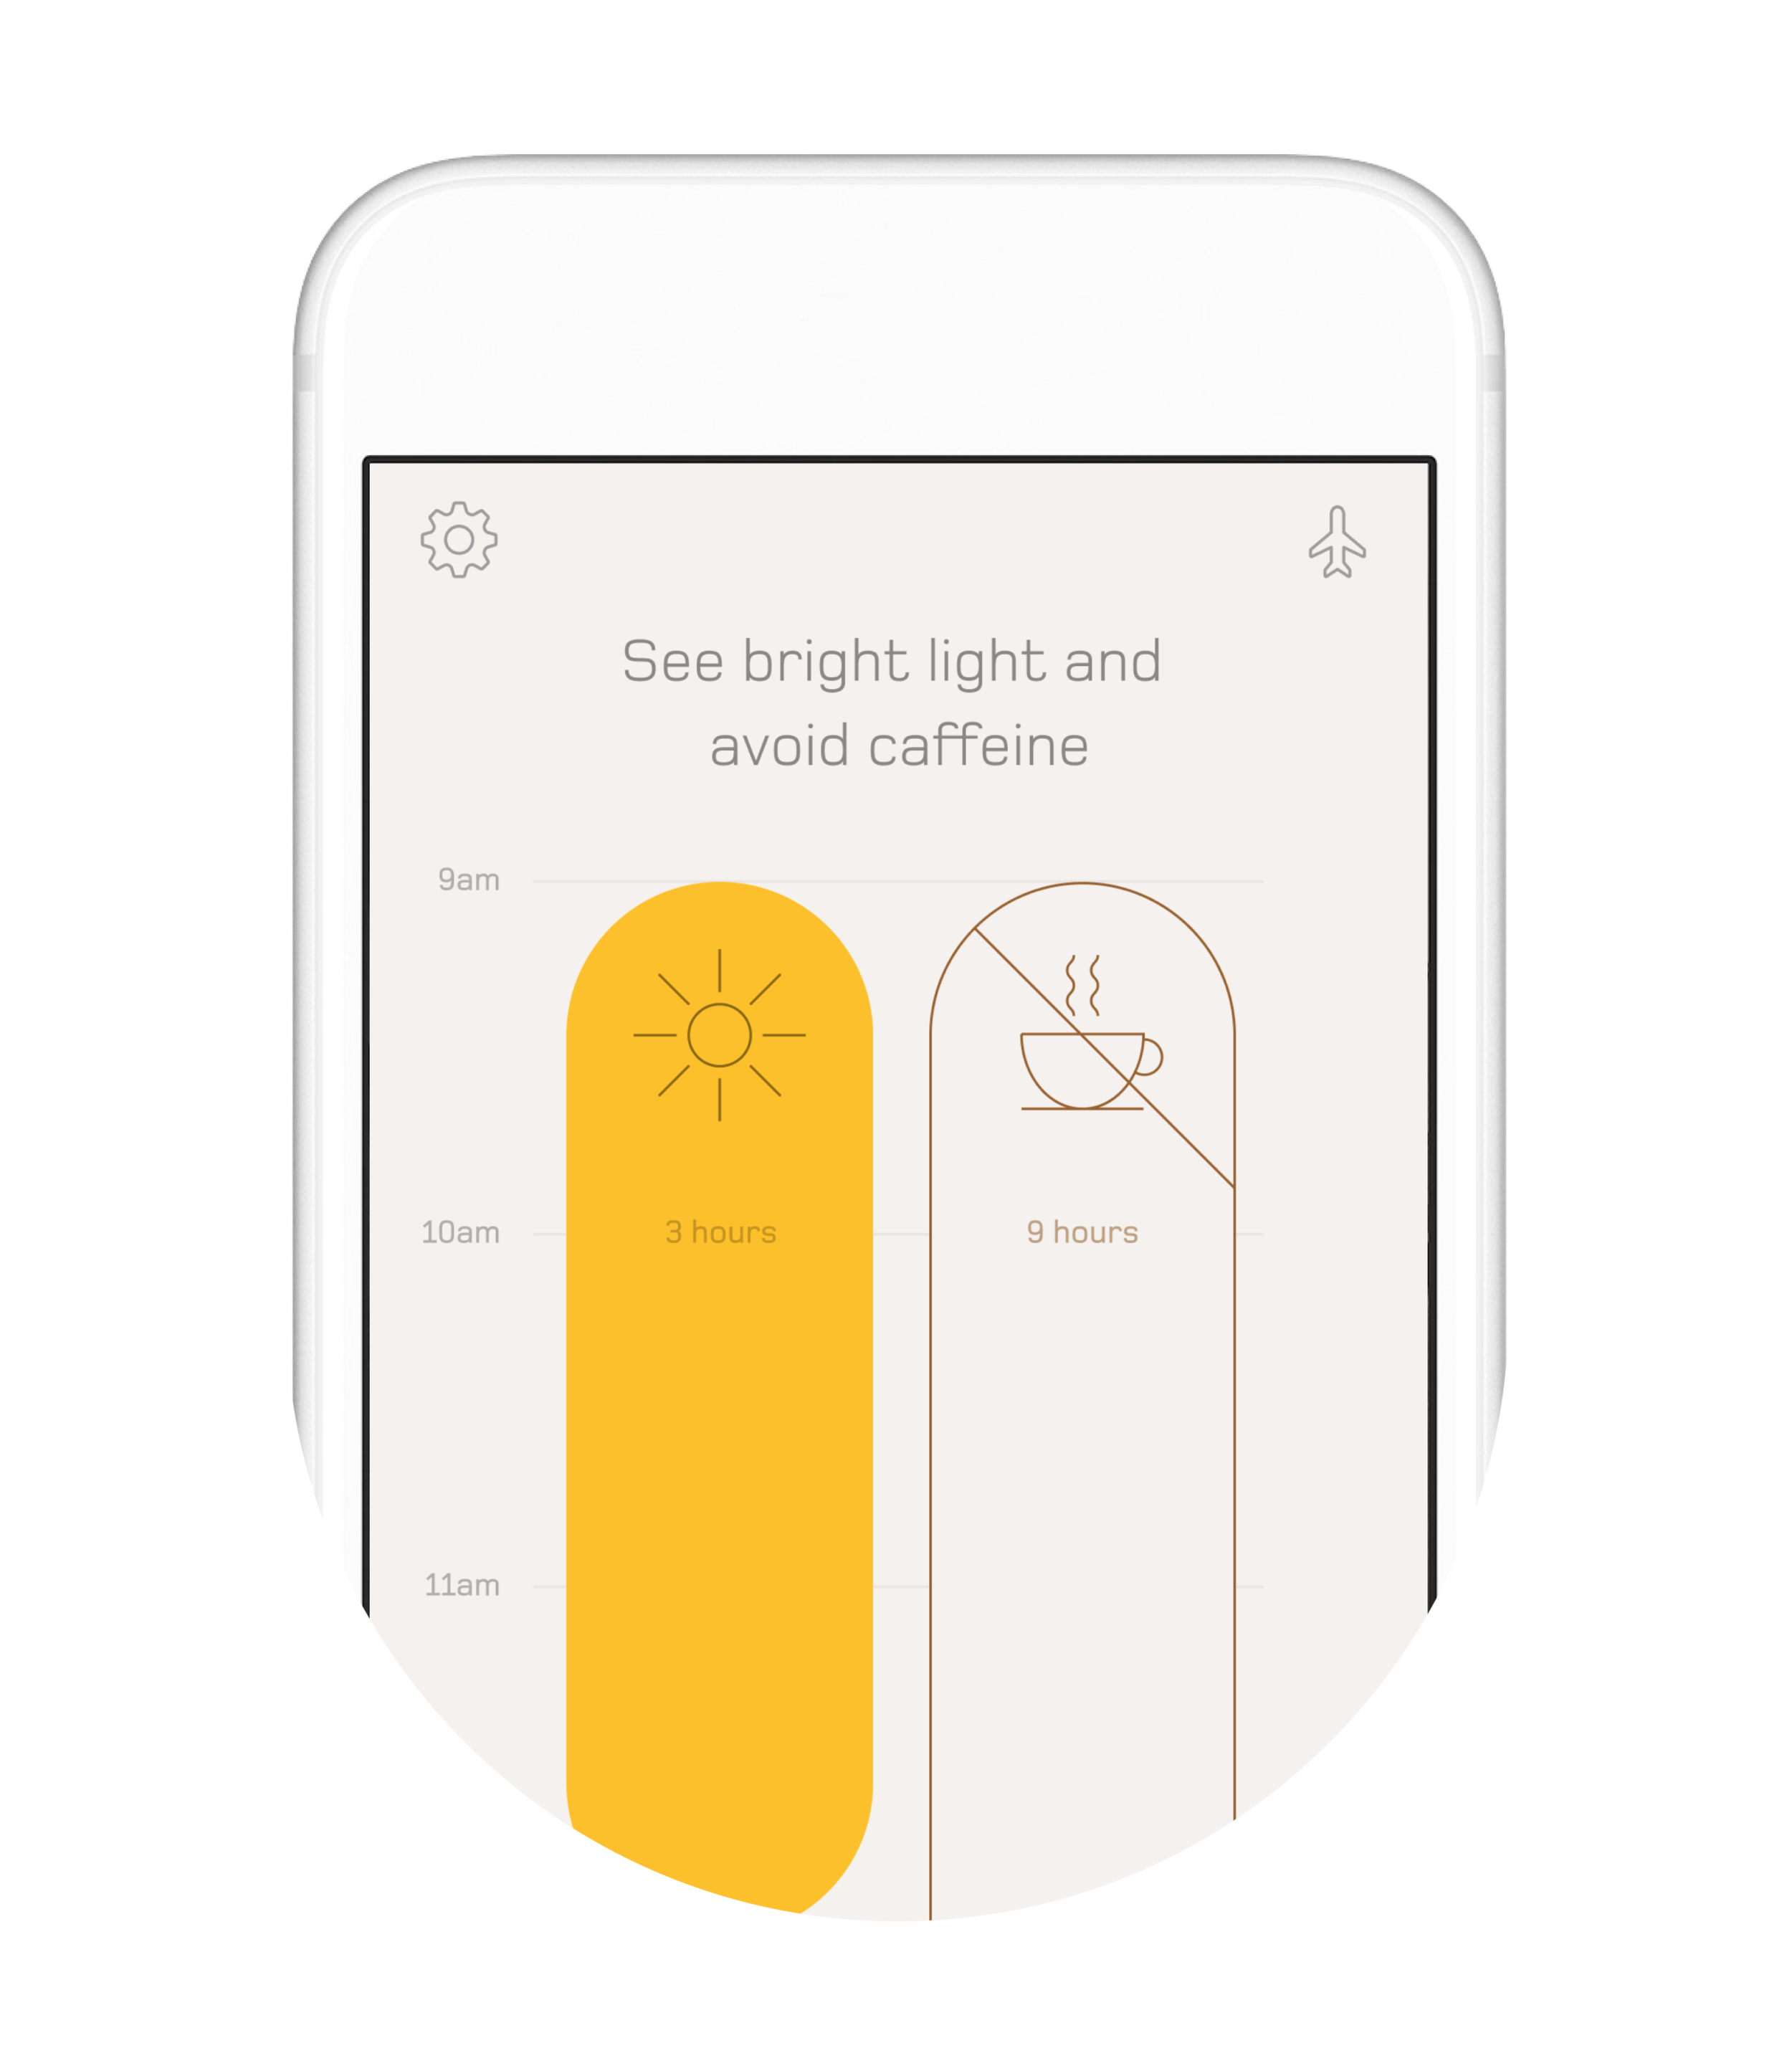 With the Timeshifter jet lag app, it's as simple as taking small actions at specific times